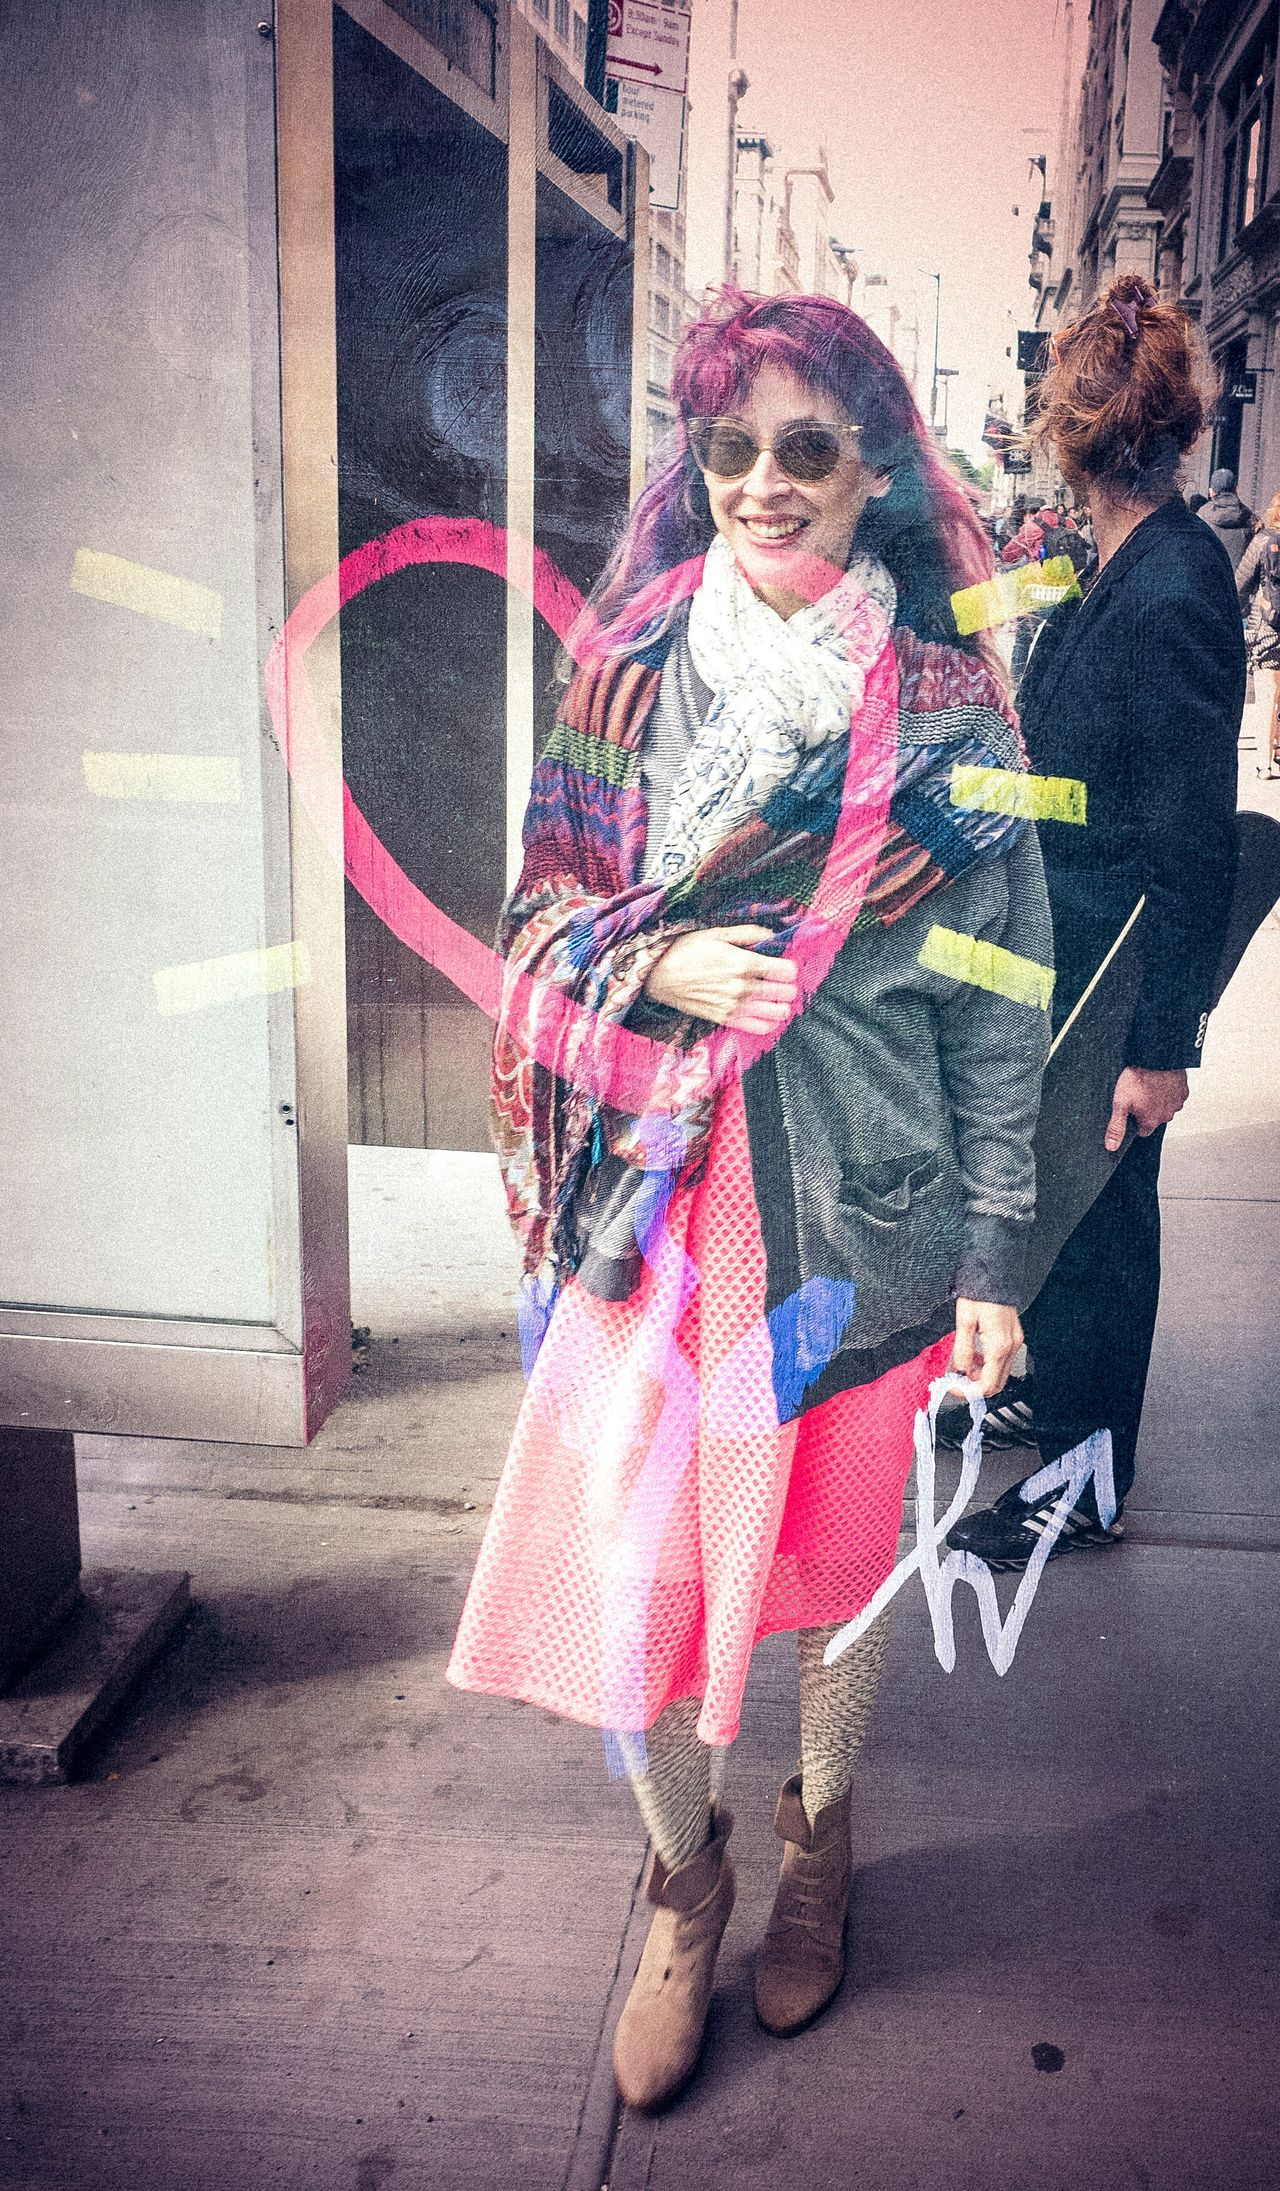 She's in love w Spring in NYC Check This Out Enjoying Life Everybodystreet Streetphotography People Watching Photography Double Exposure Candid Portraits Photo Walk Nyc Helloicp Streetphotomag Nyc Streets Peopleofnyc